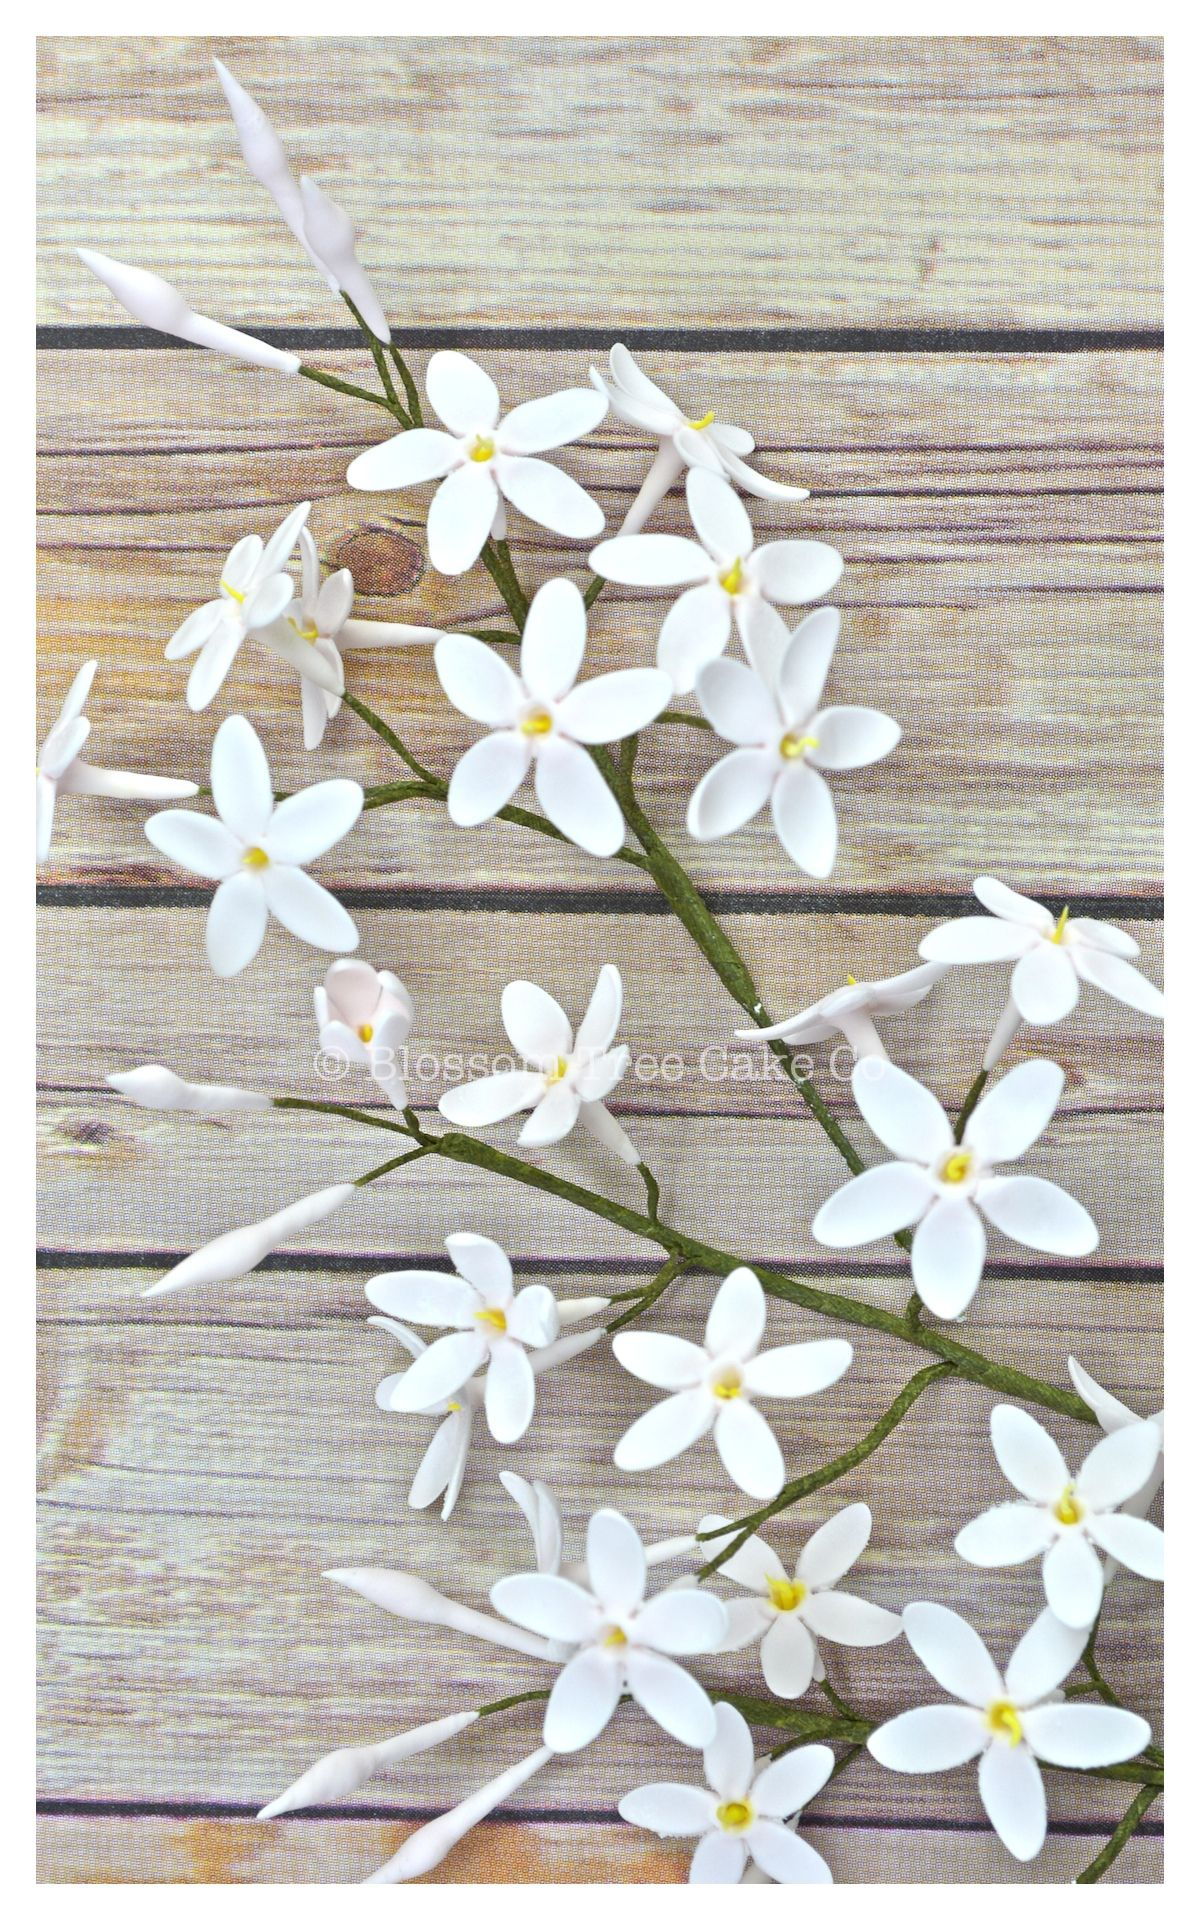 Jasmine Flowers To Decorate Your Wedding Or Special Celebration Cake